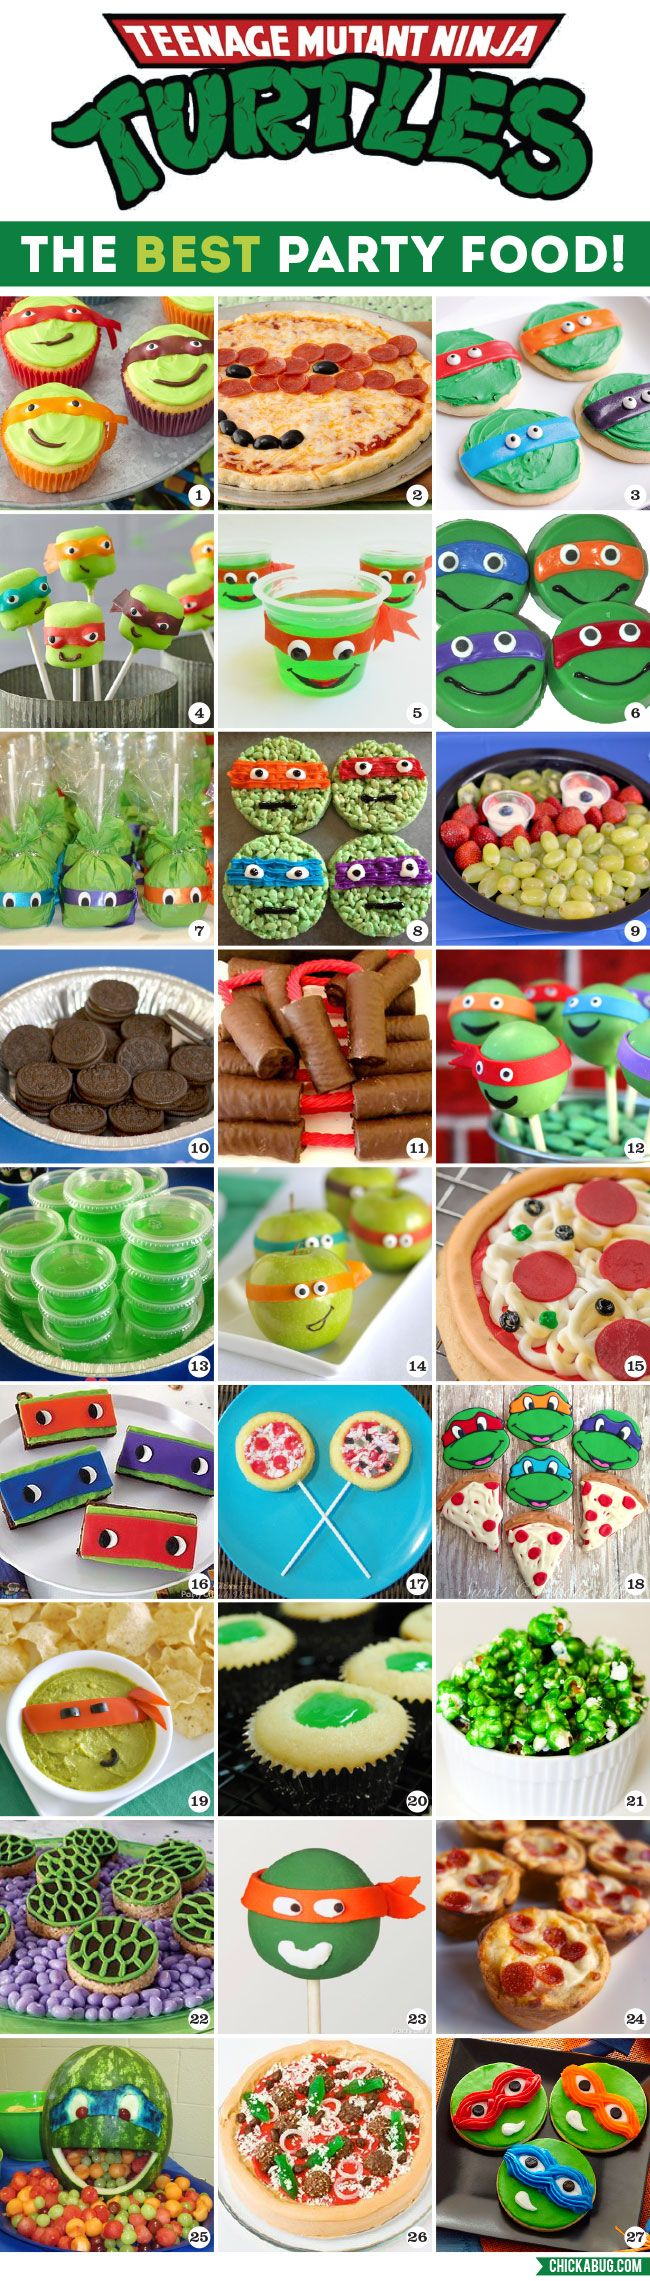 Gmail ninja theme - All The Best Teenage Mutant Ninja Turtles Party Food Ideas Together In One Place